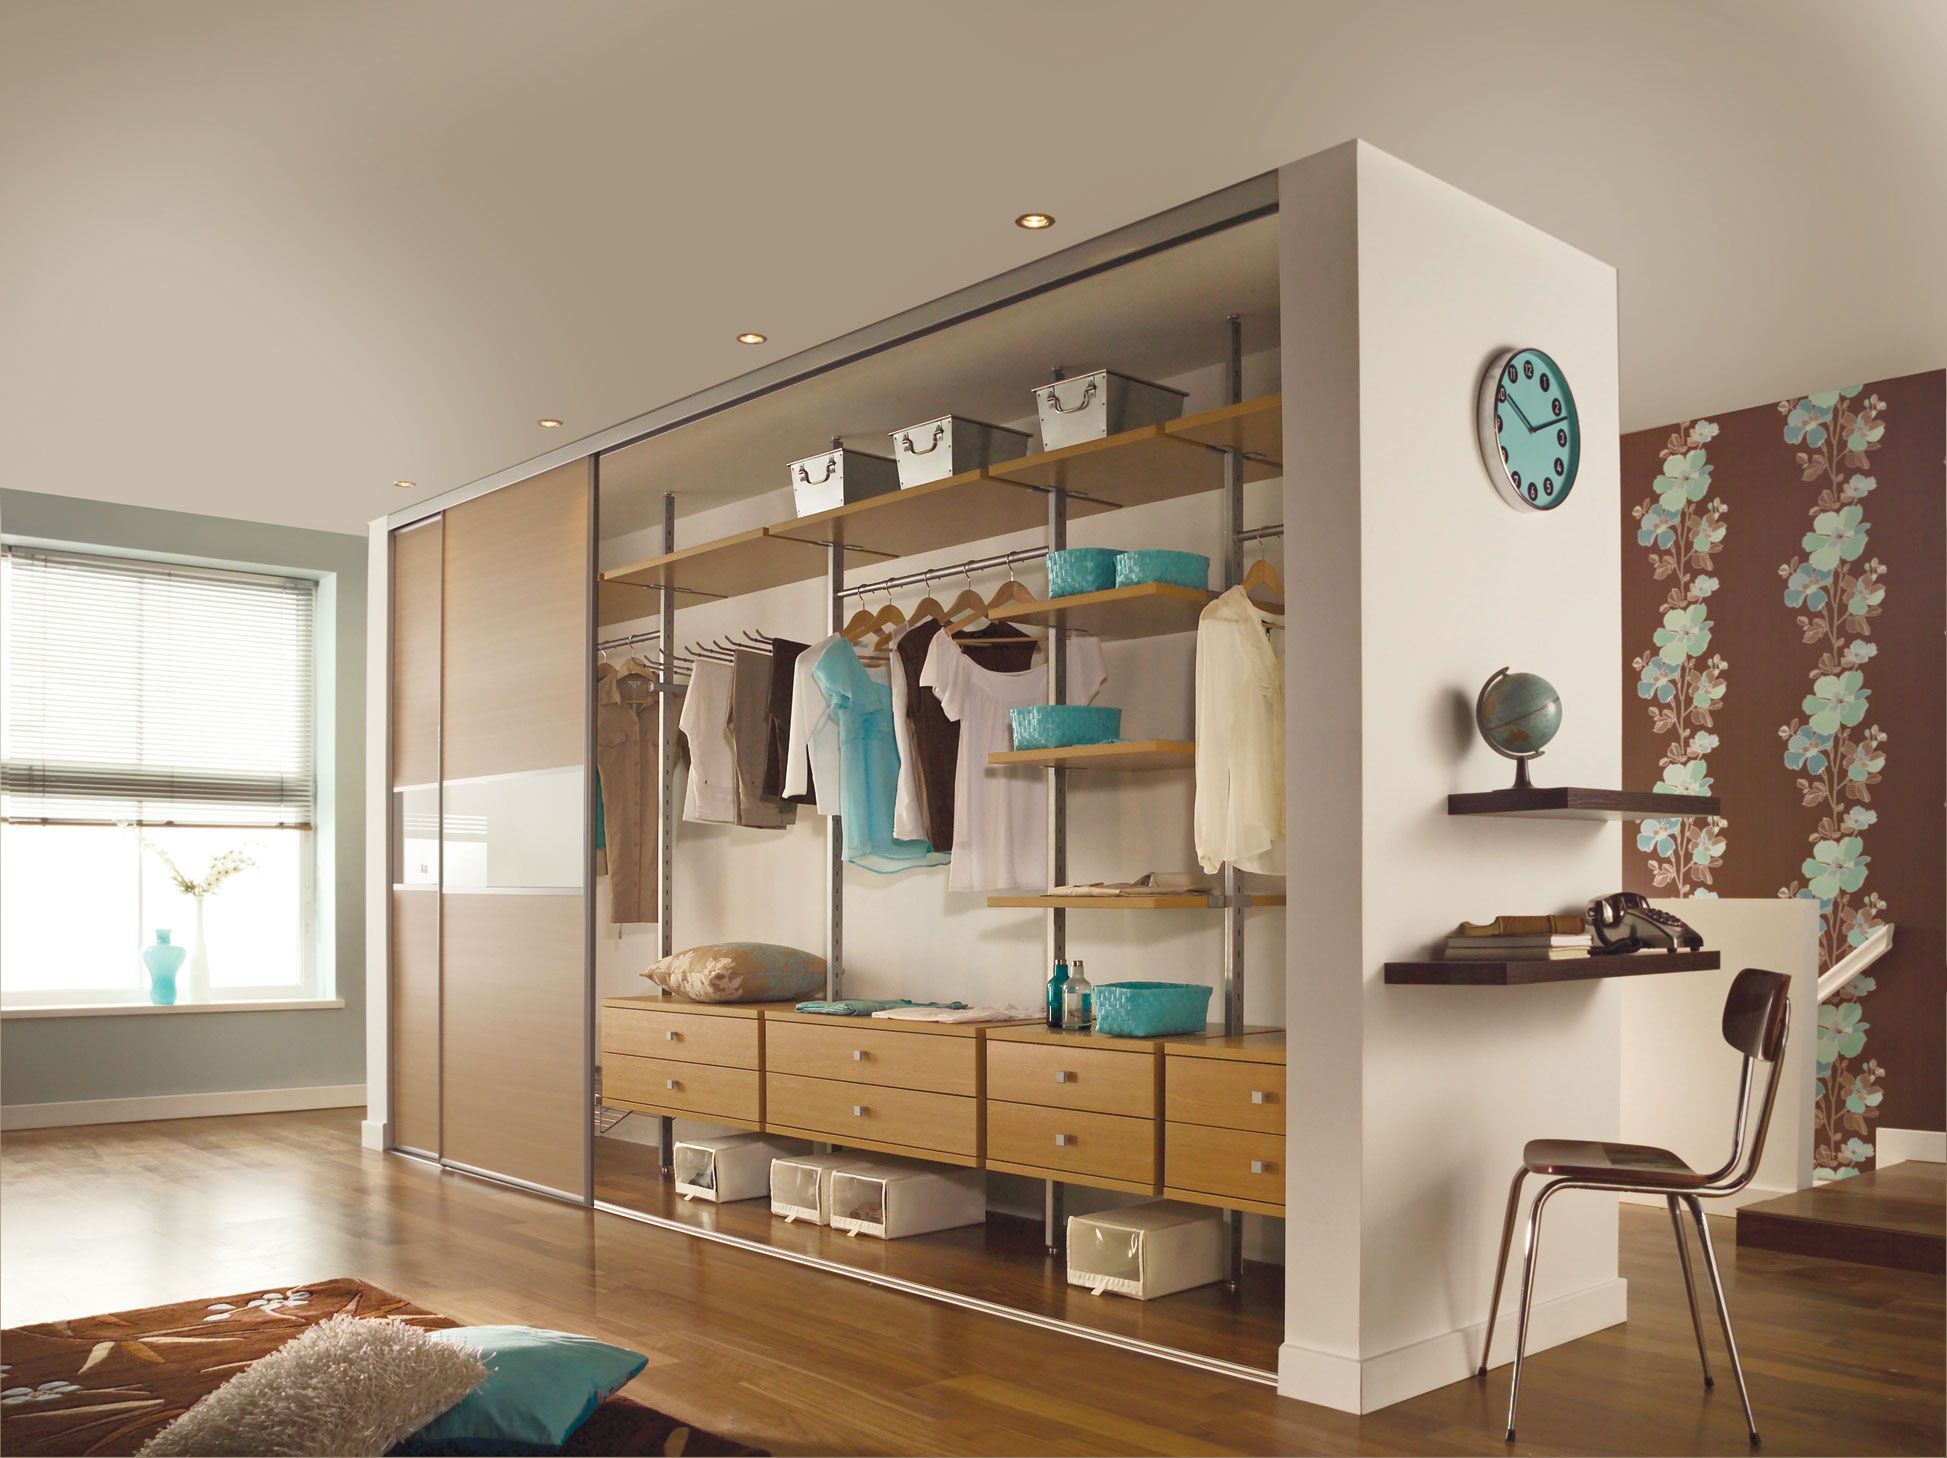 Modular bedroom furniture systems - Pax Closet System With Wall Clock Ideas Pax Closet System With Wall Clock Interior Design Pax Closet System With Wall Clock Image Id 50559 In Gallery